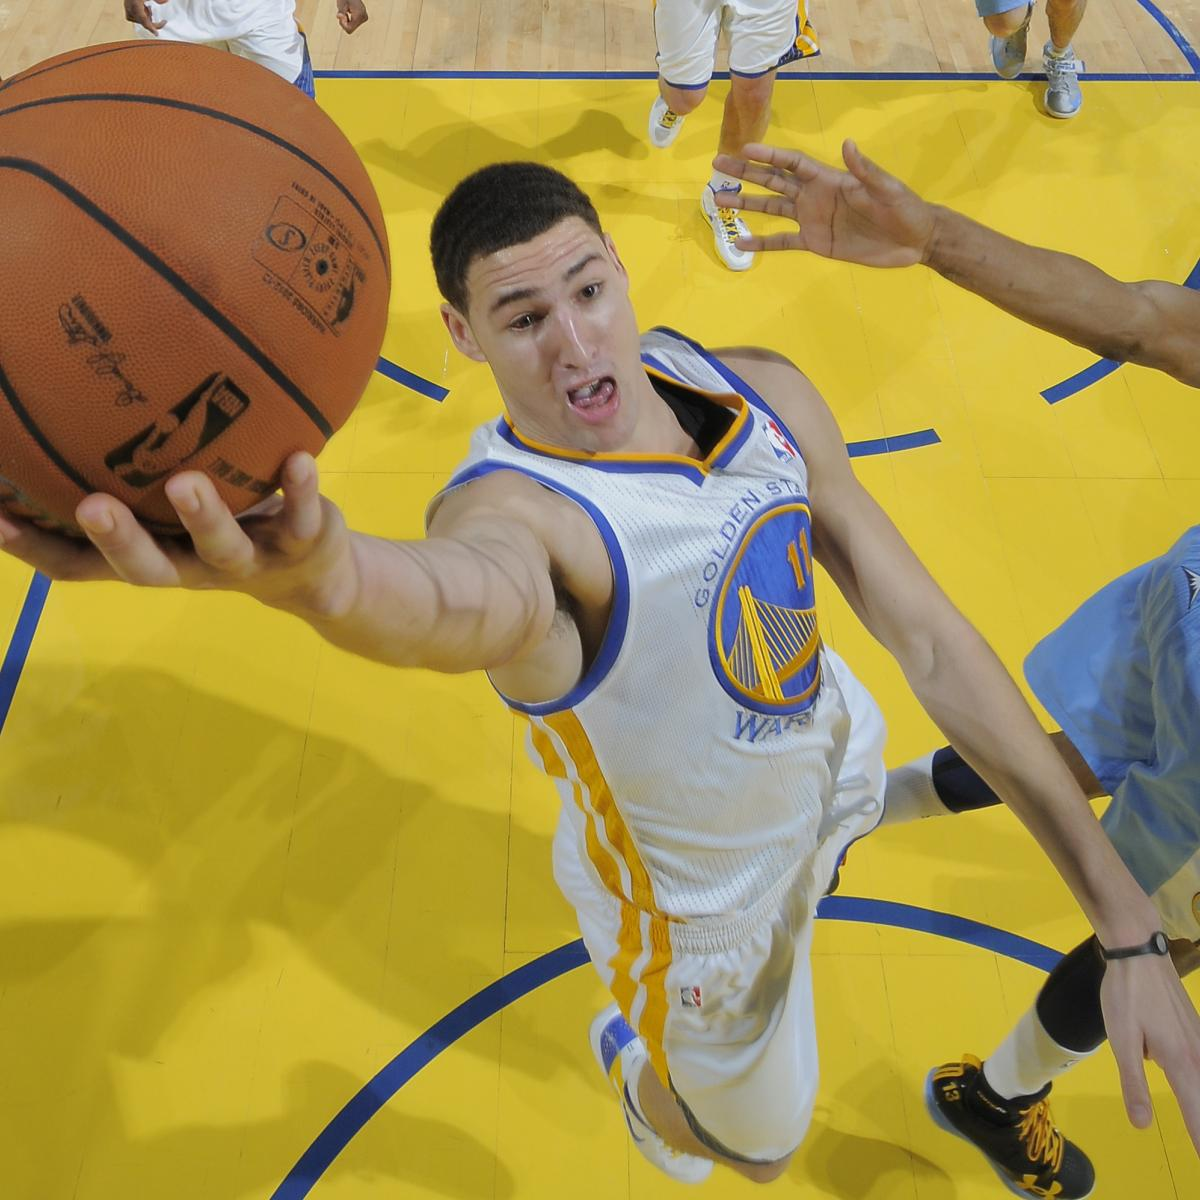 Nuggets Clippers Highlights: Denver Nuggets Vs. Golden State Warriors: Live Score